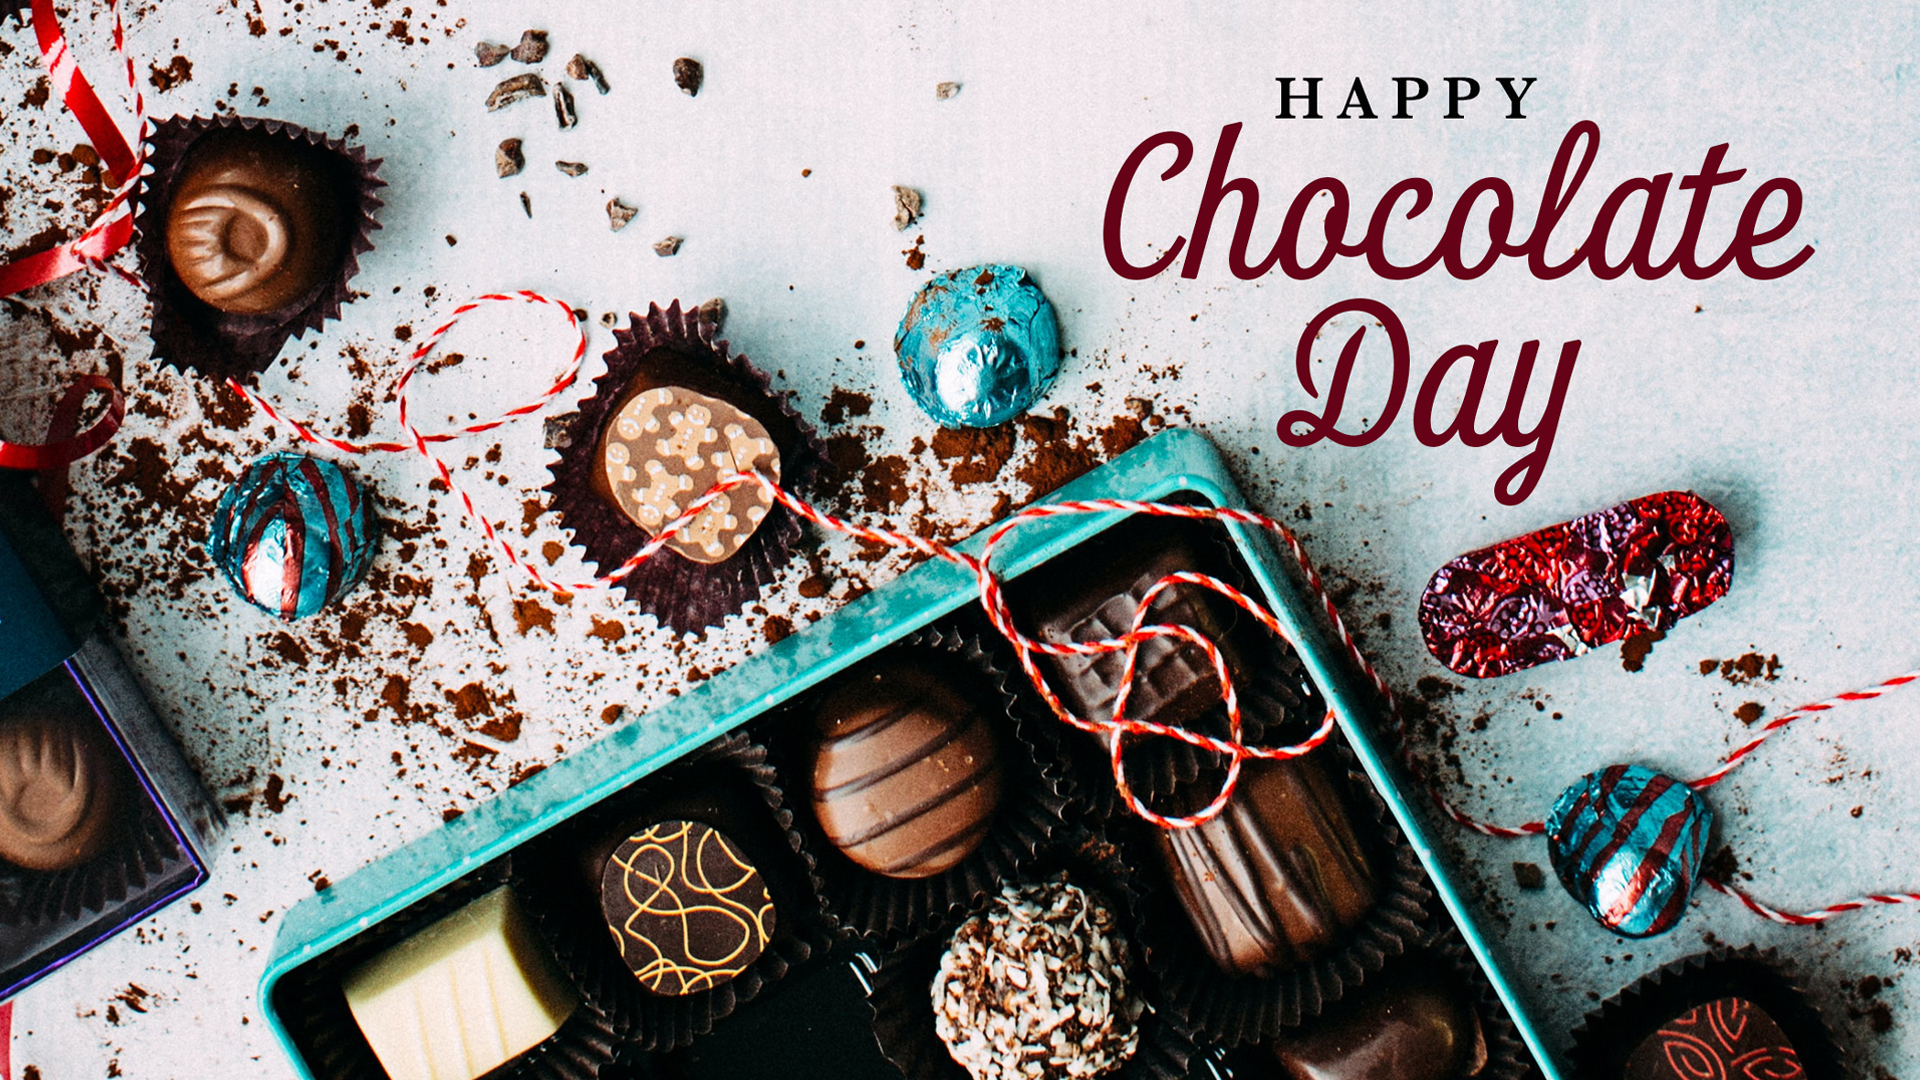 Nation Chocolate Day July 7 Digital Signage Graphic